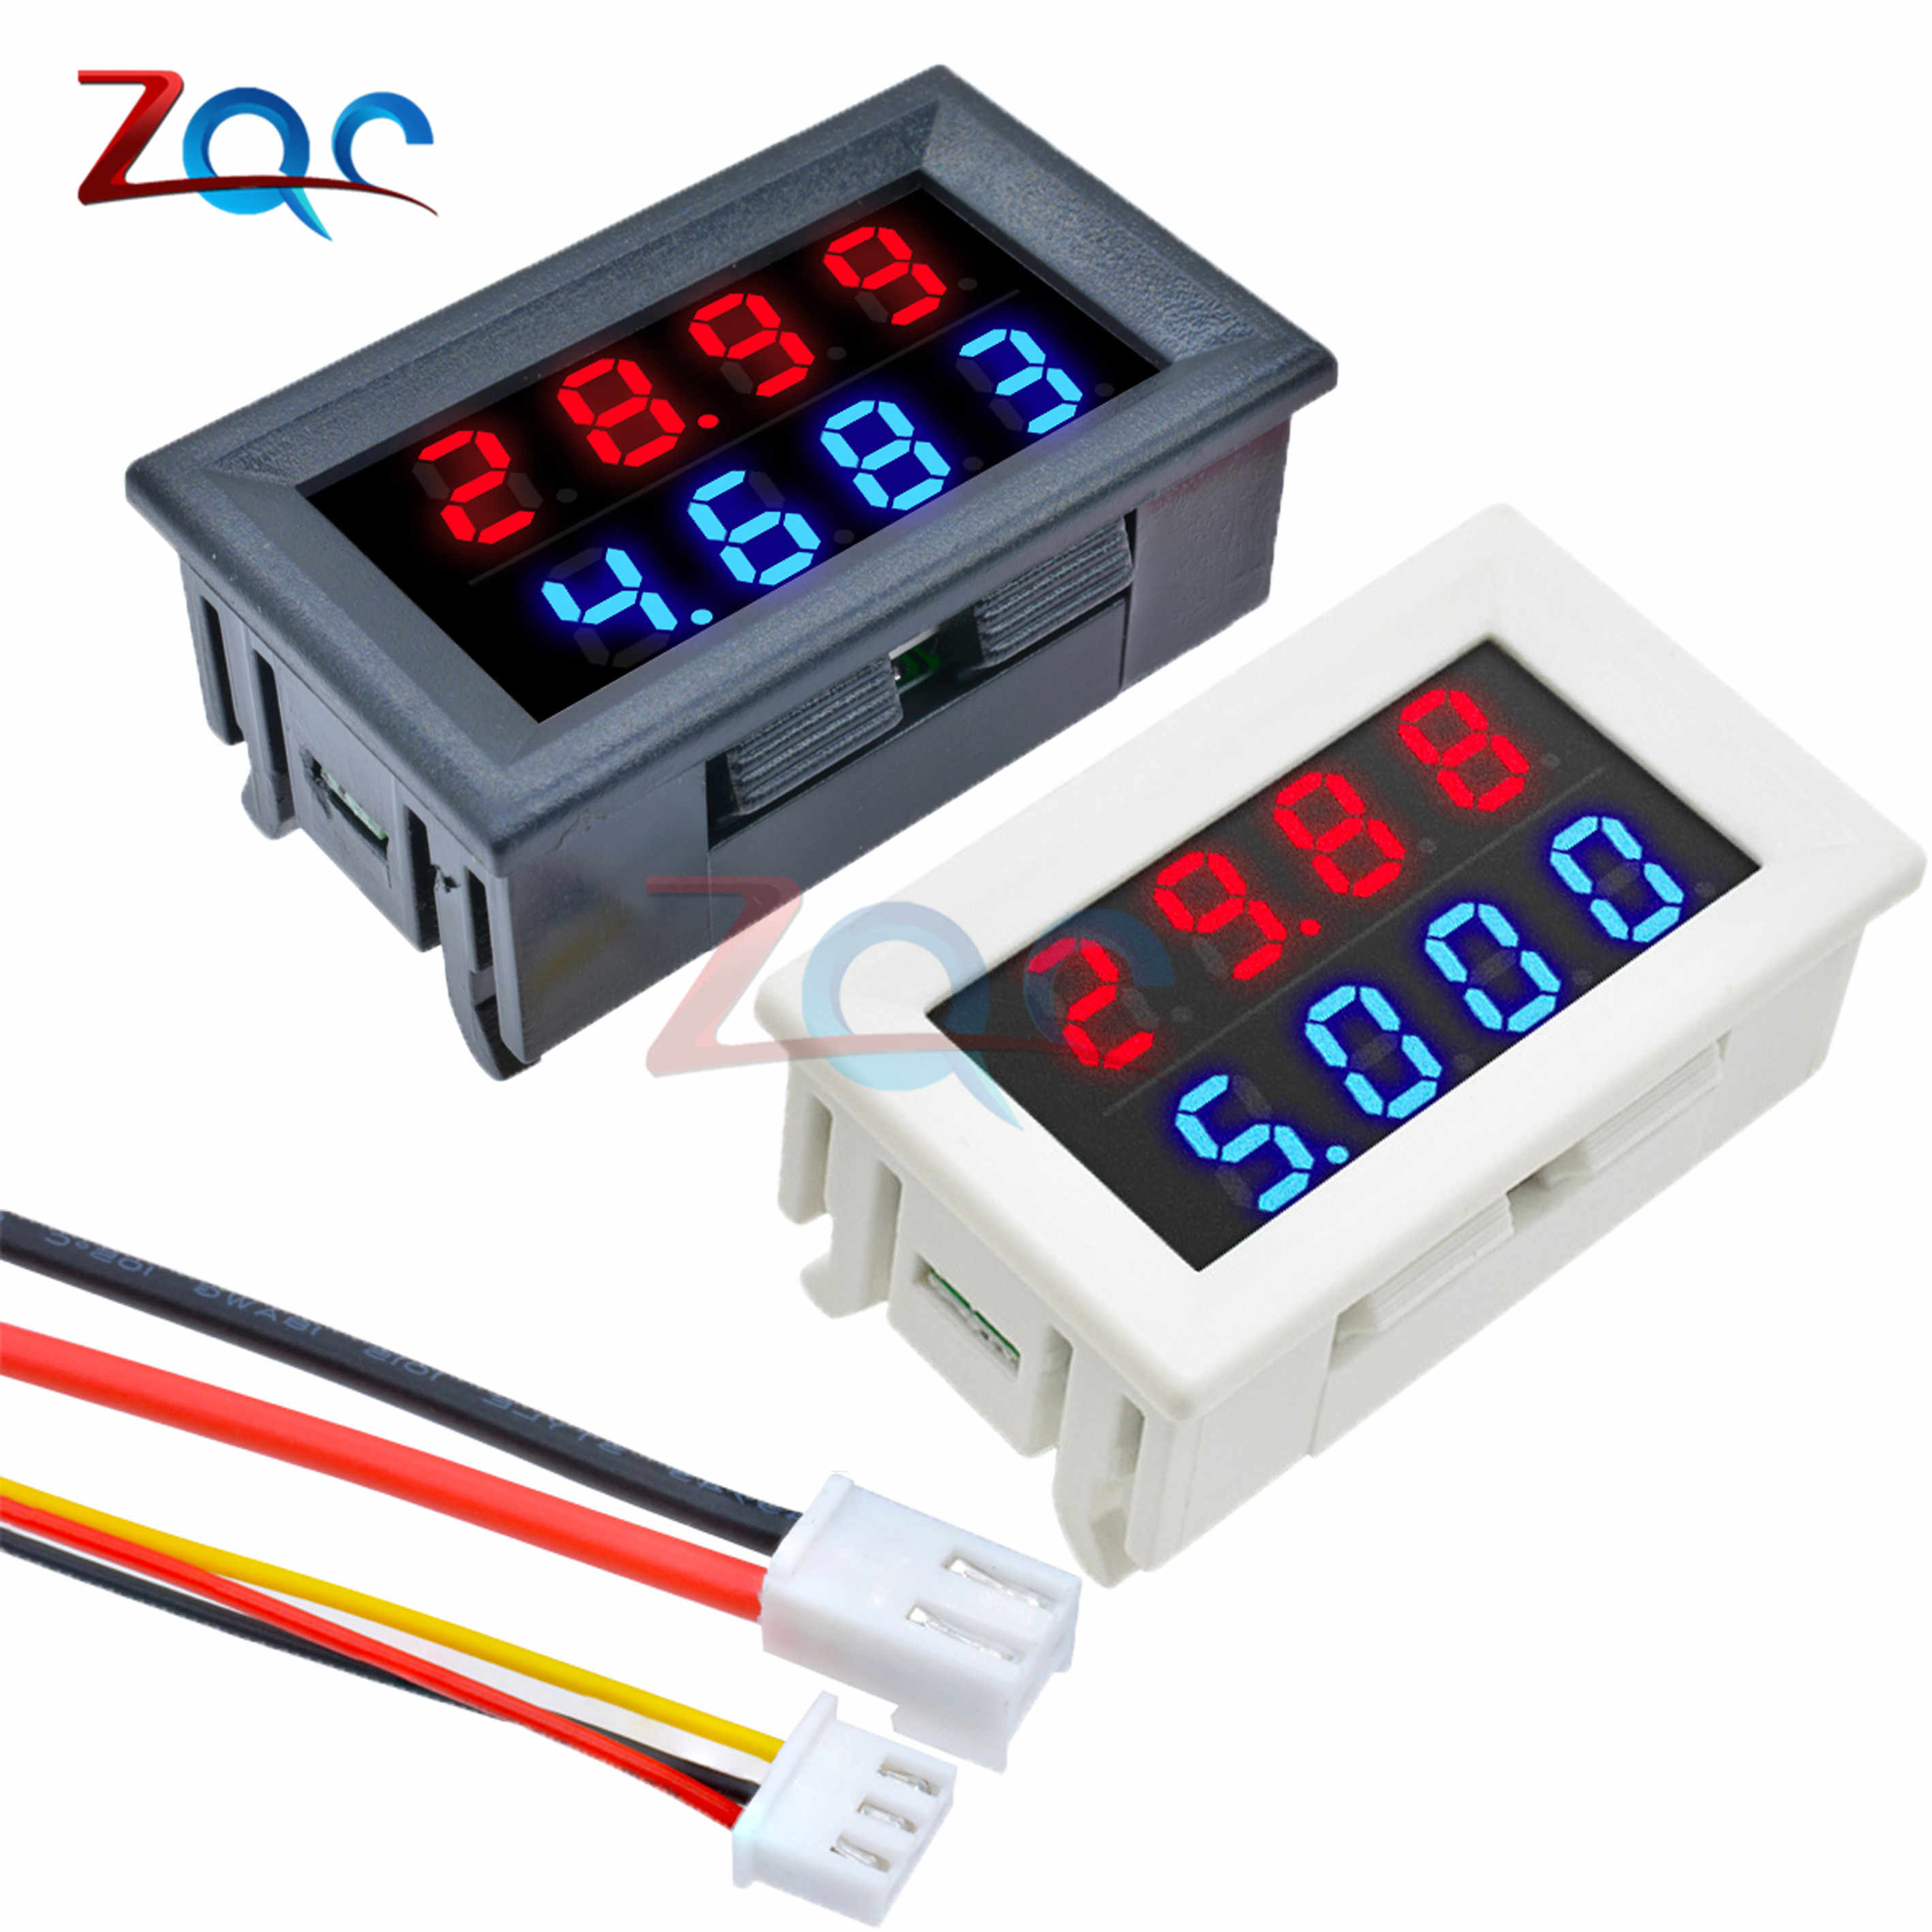 Mini DC 4 Bits Dual Digital Voltmeter Ammeter DC 200V 10A Voltage Current Volt Amp Monitor Meter Detector Power Supply Tester